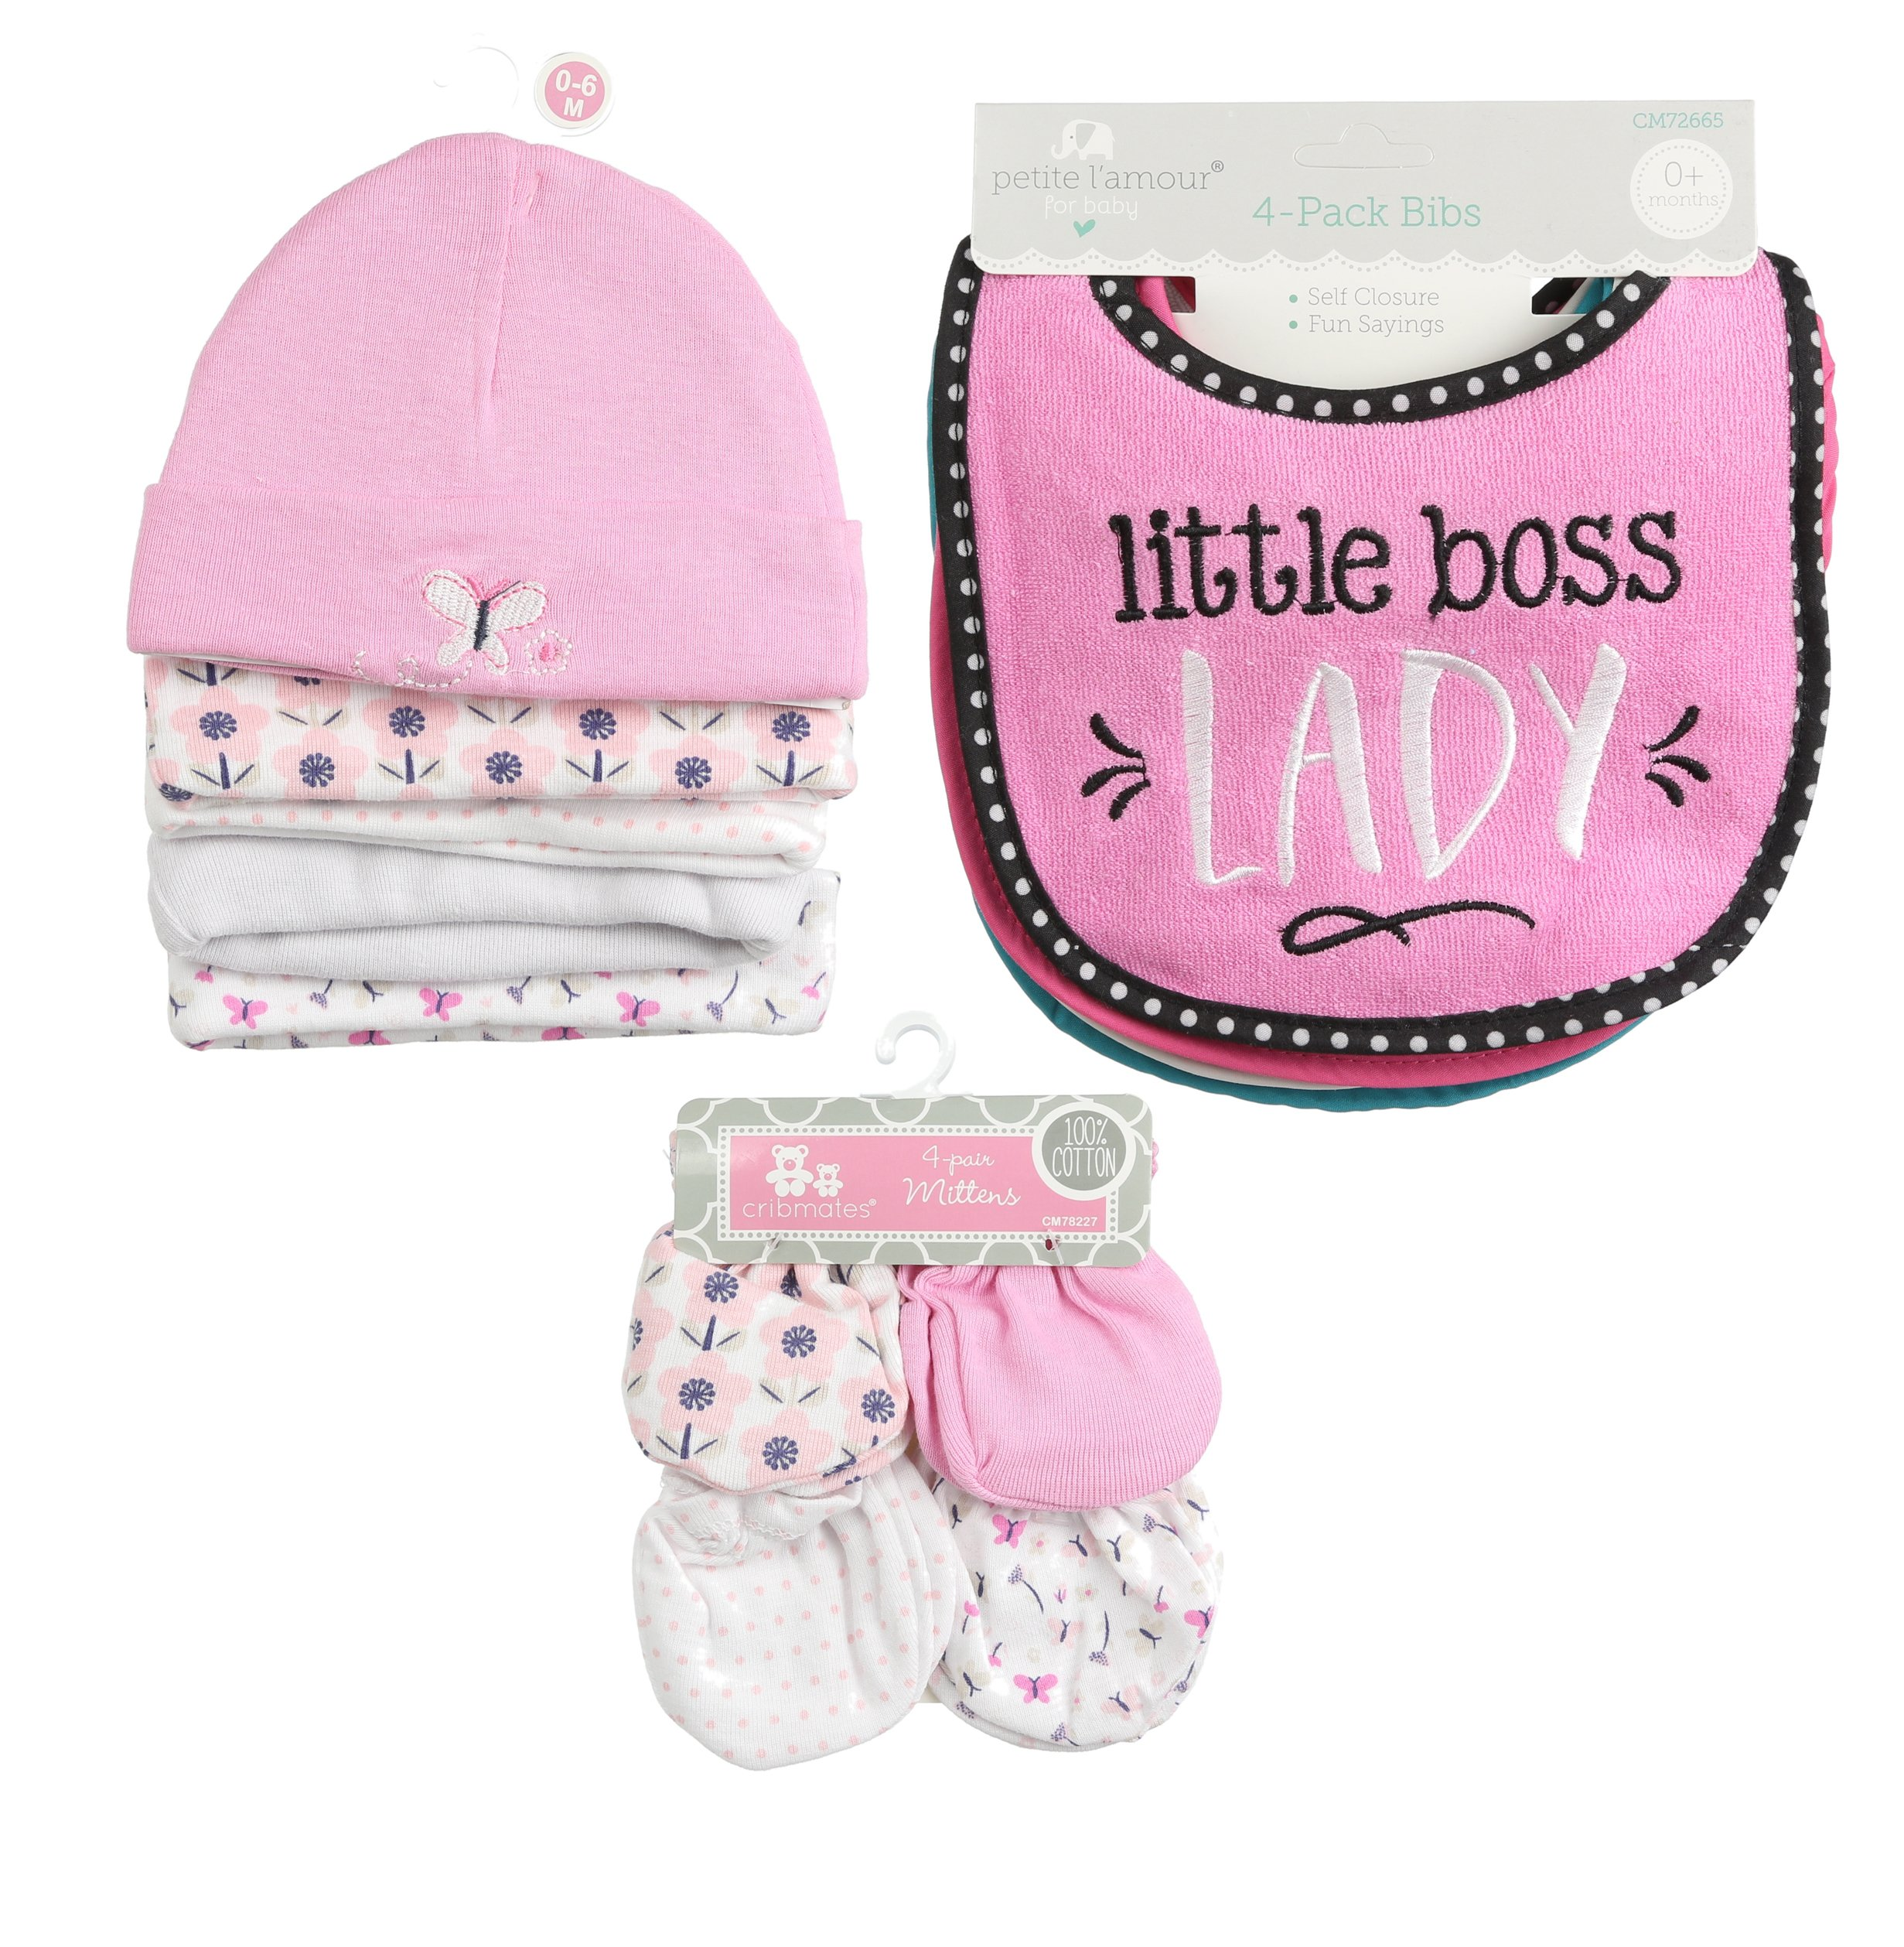 ''Infant Caps Pink 5-pk, 4 Piece Girl Bib, and 4 Pairs Unisex-Baby No Scratch Mittens, 100% Cotton, Bundle for Infants and Toddlers ''